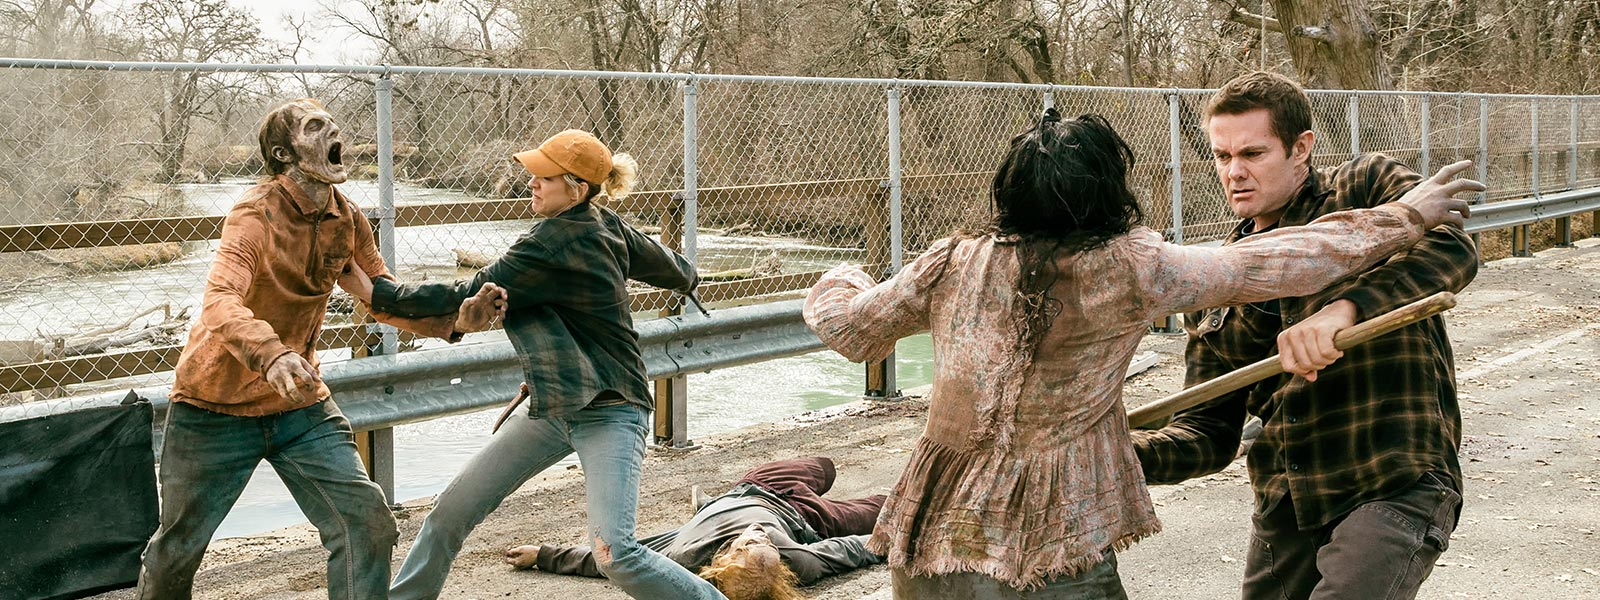 fear-the-walking-dead-episode-405-naomi-elfman-john-dillahunt-post-800×600